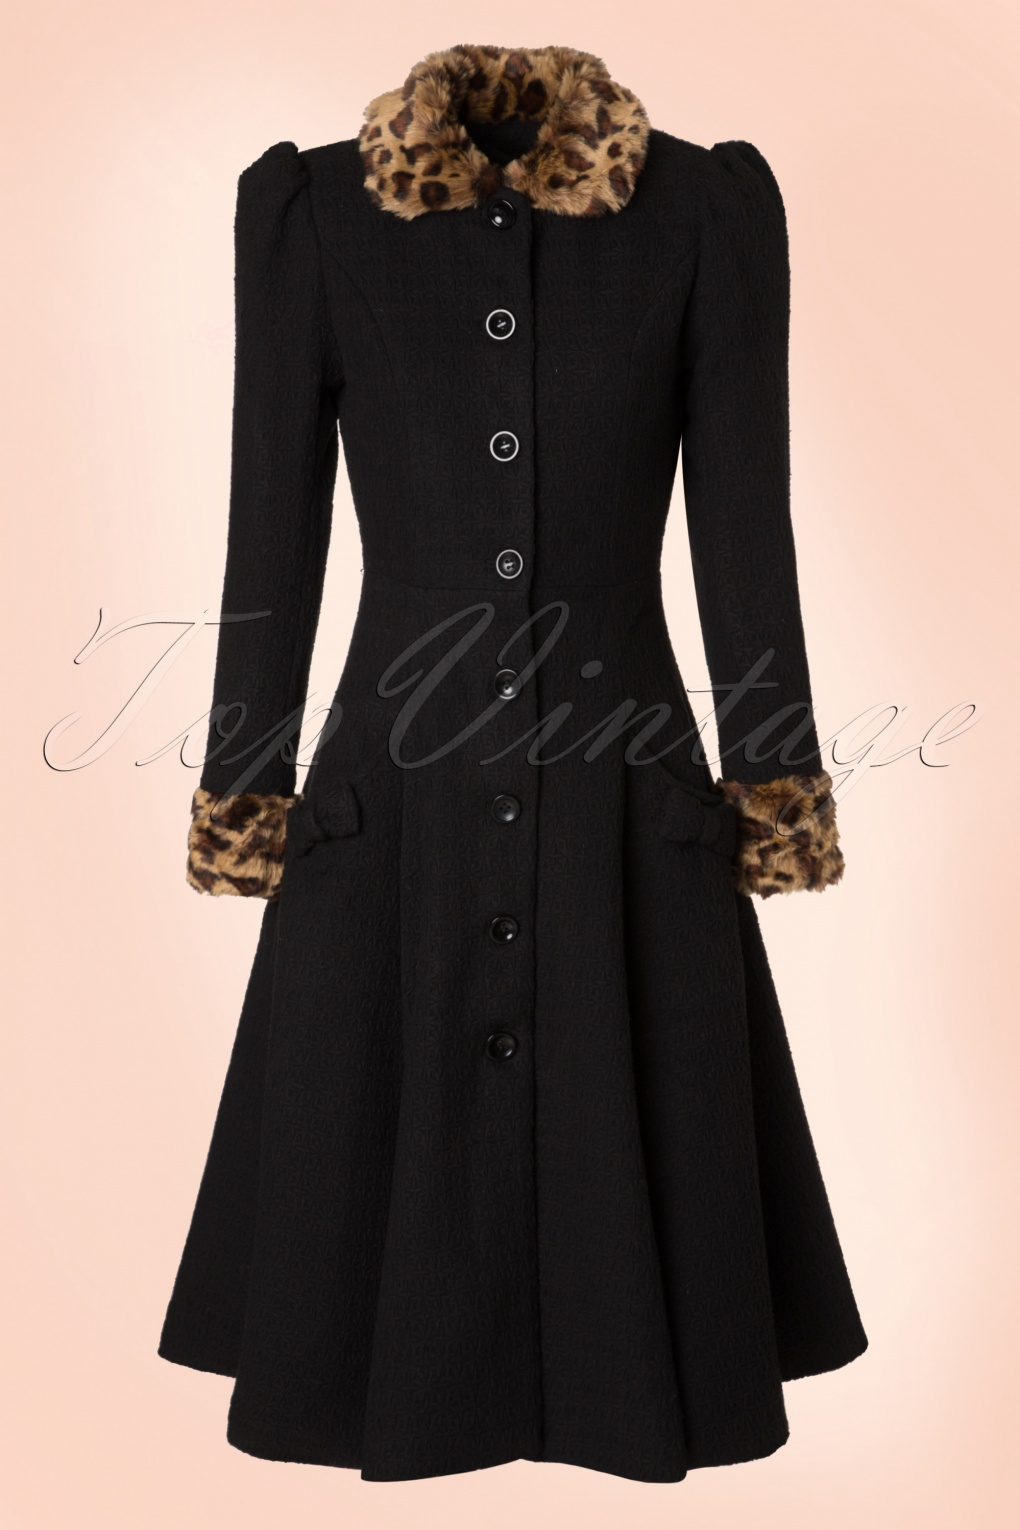 1950s Jackets and Coats | Swing, Pin Up, Rockabilly 50s Gina Leopard Coat in Black £124.95 AT vintagedancer.com